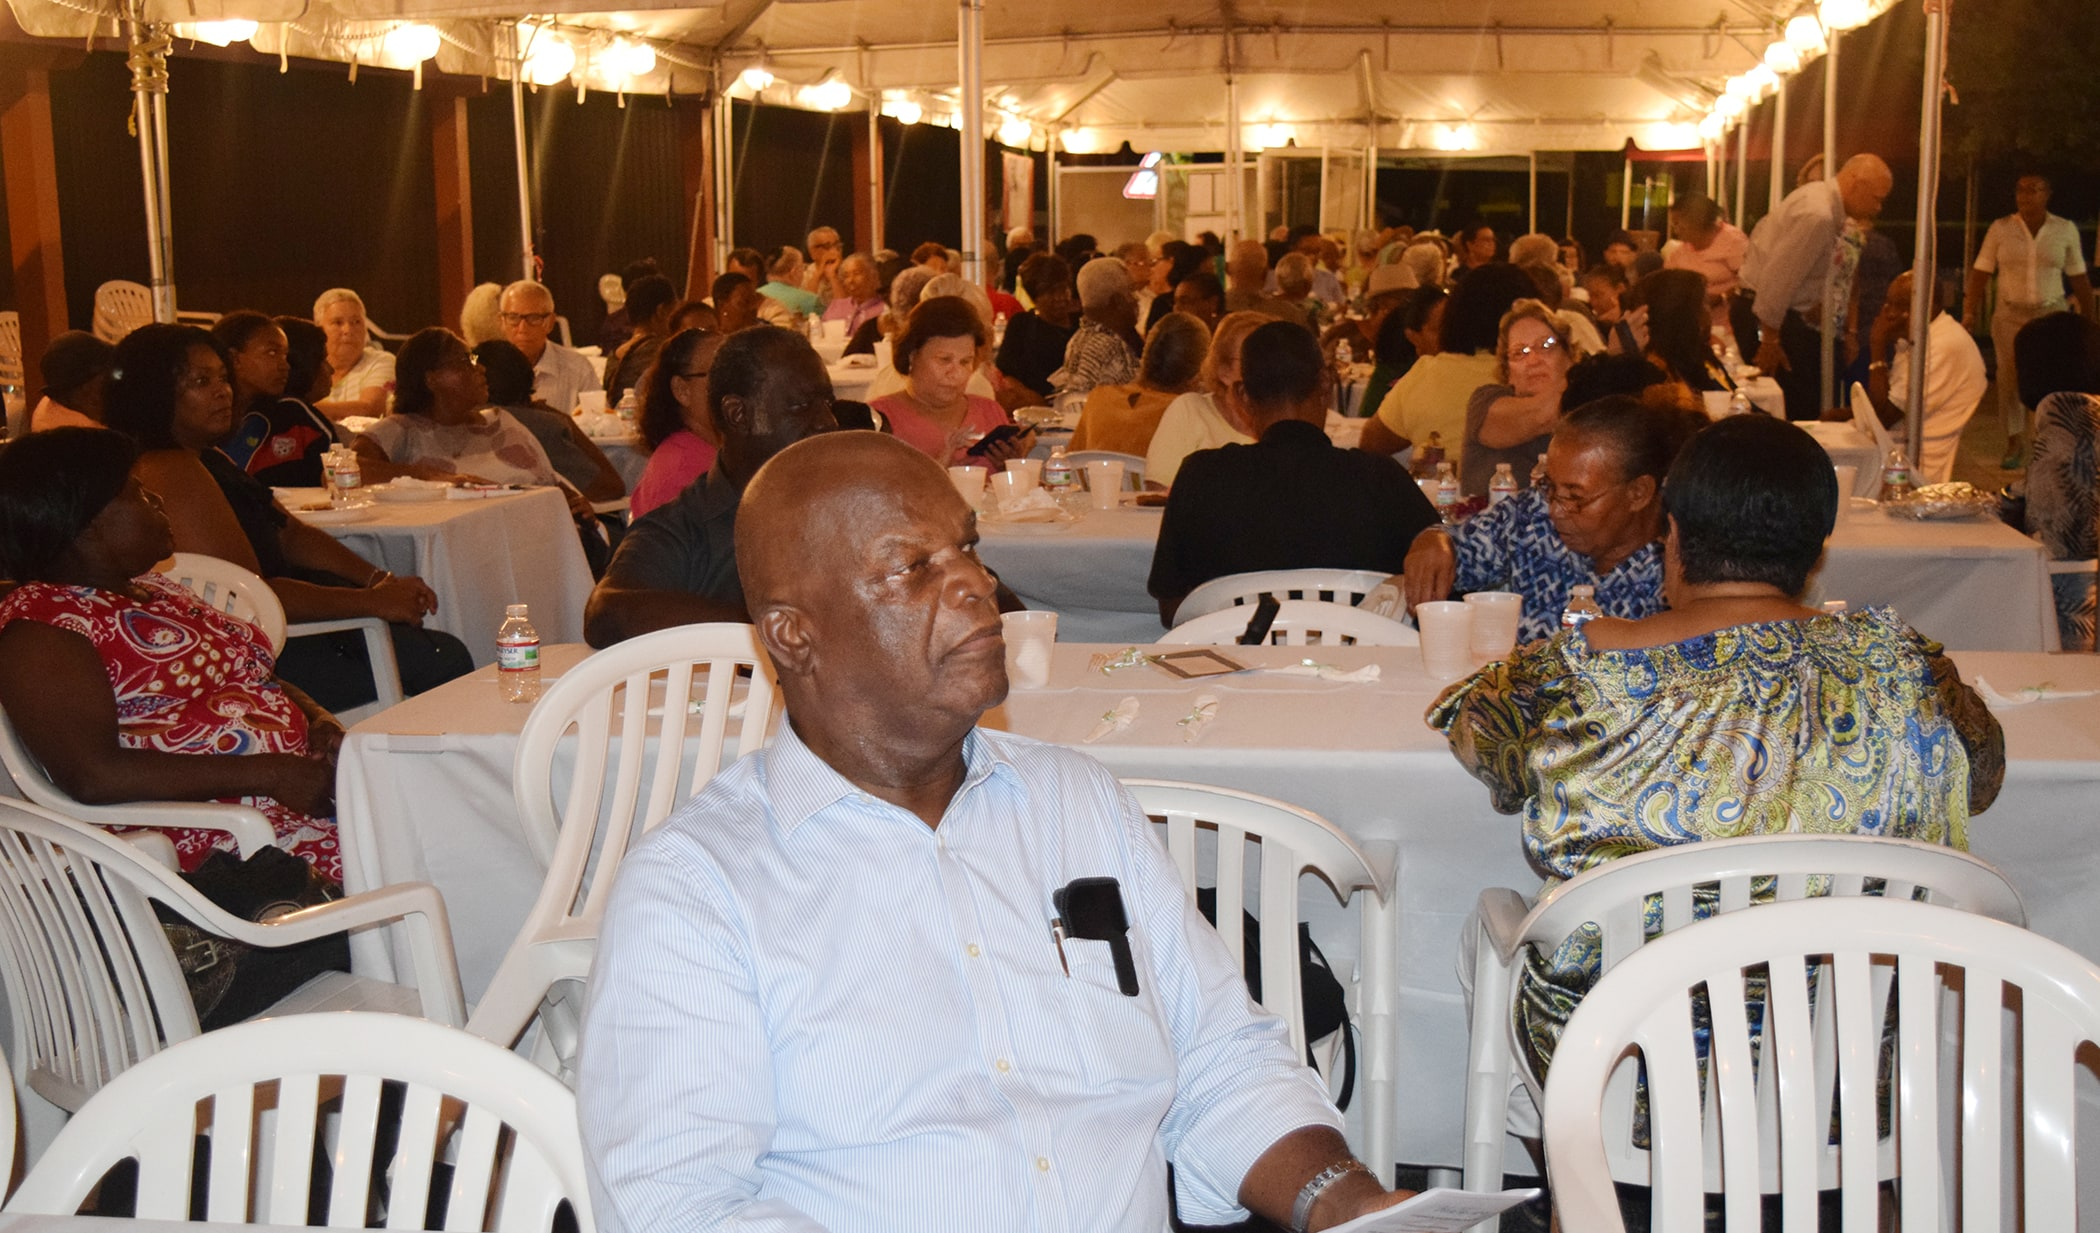 A night with the Stars attendees settle in for a night of fun.